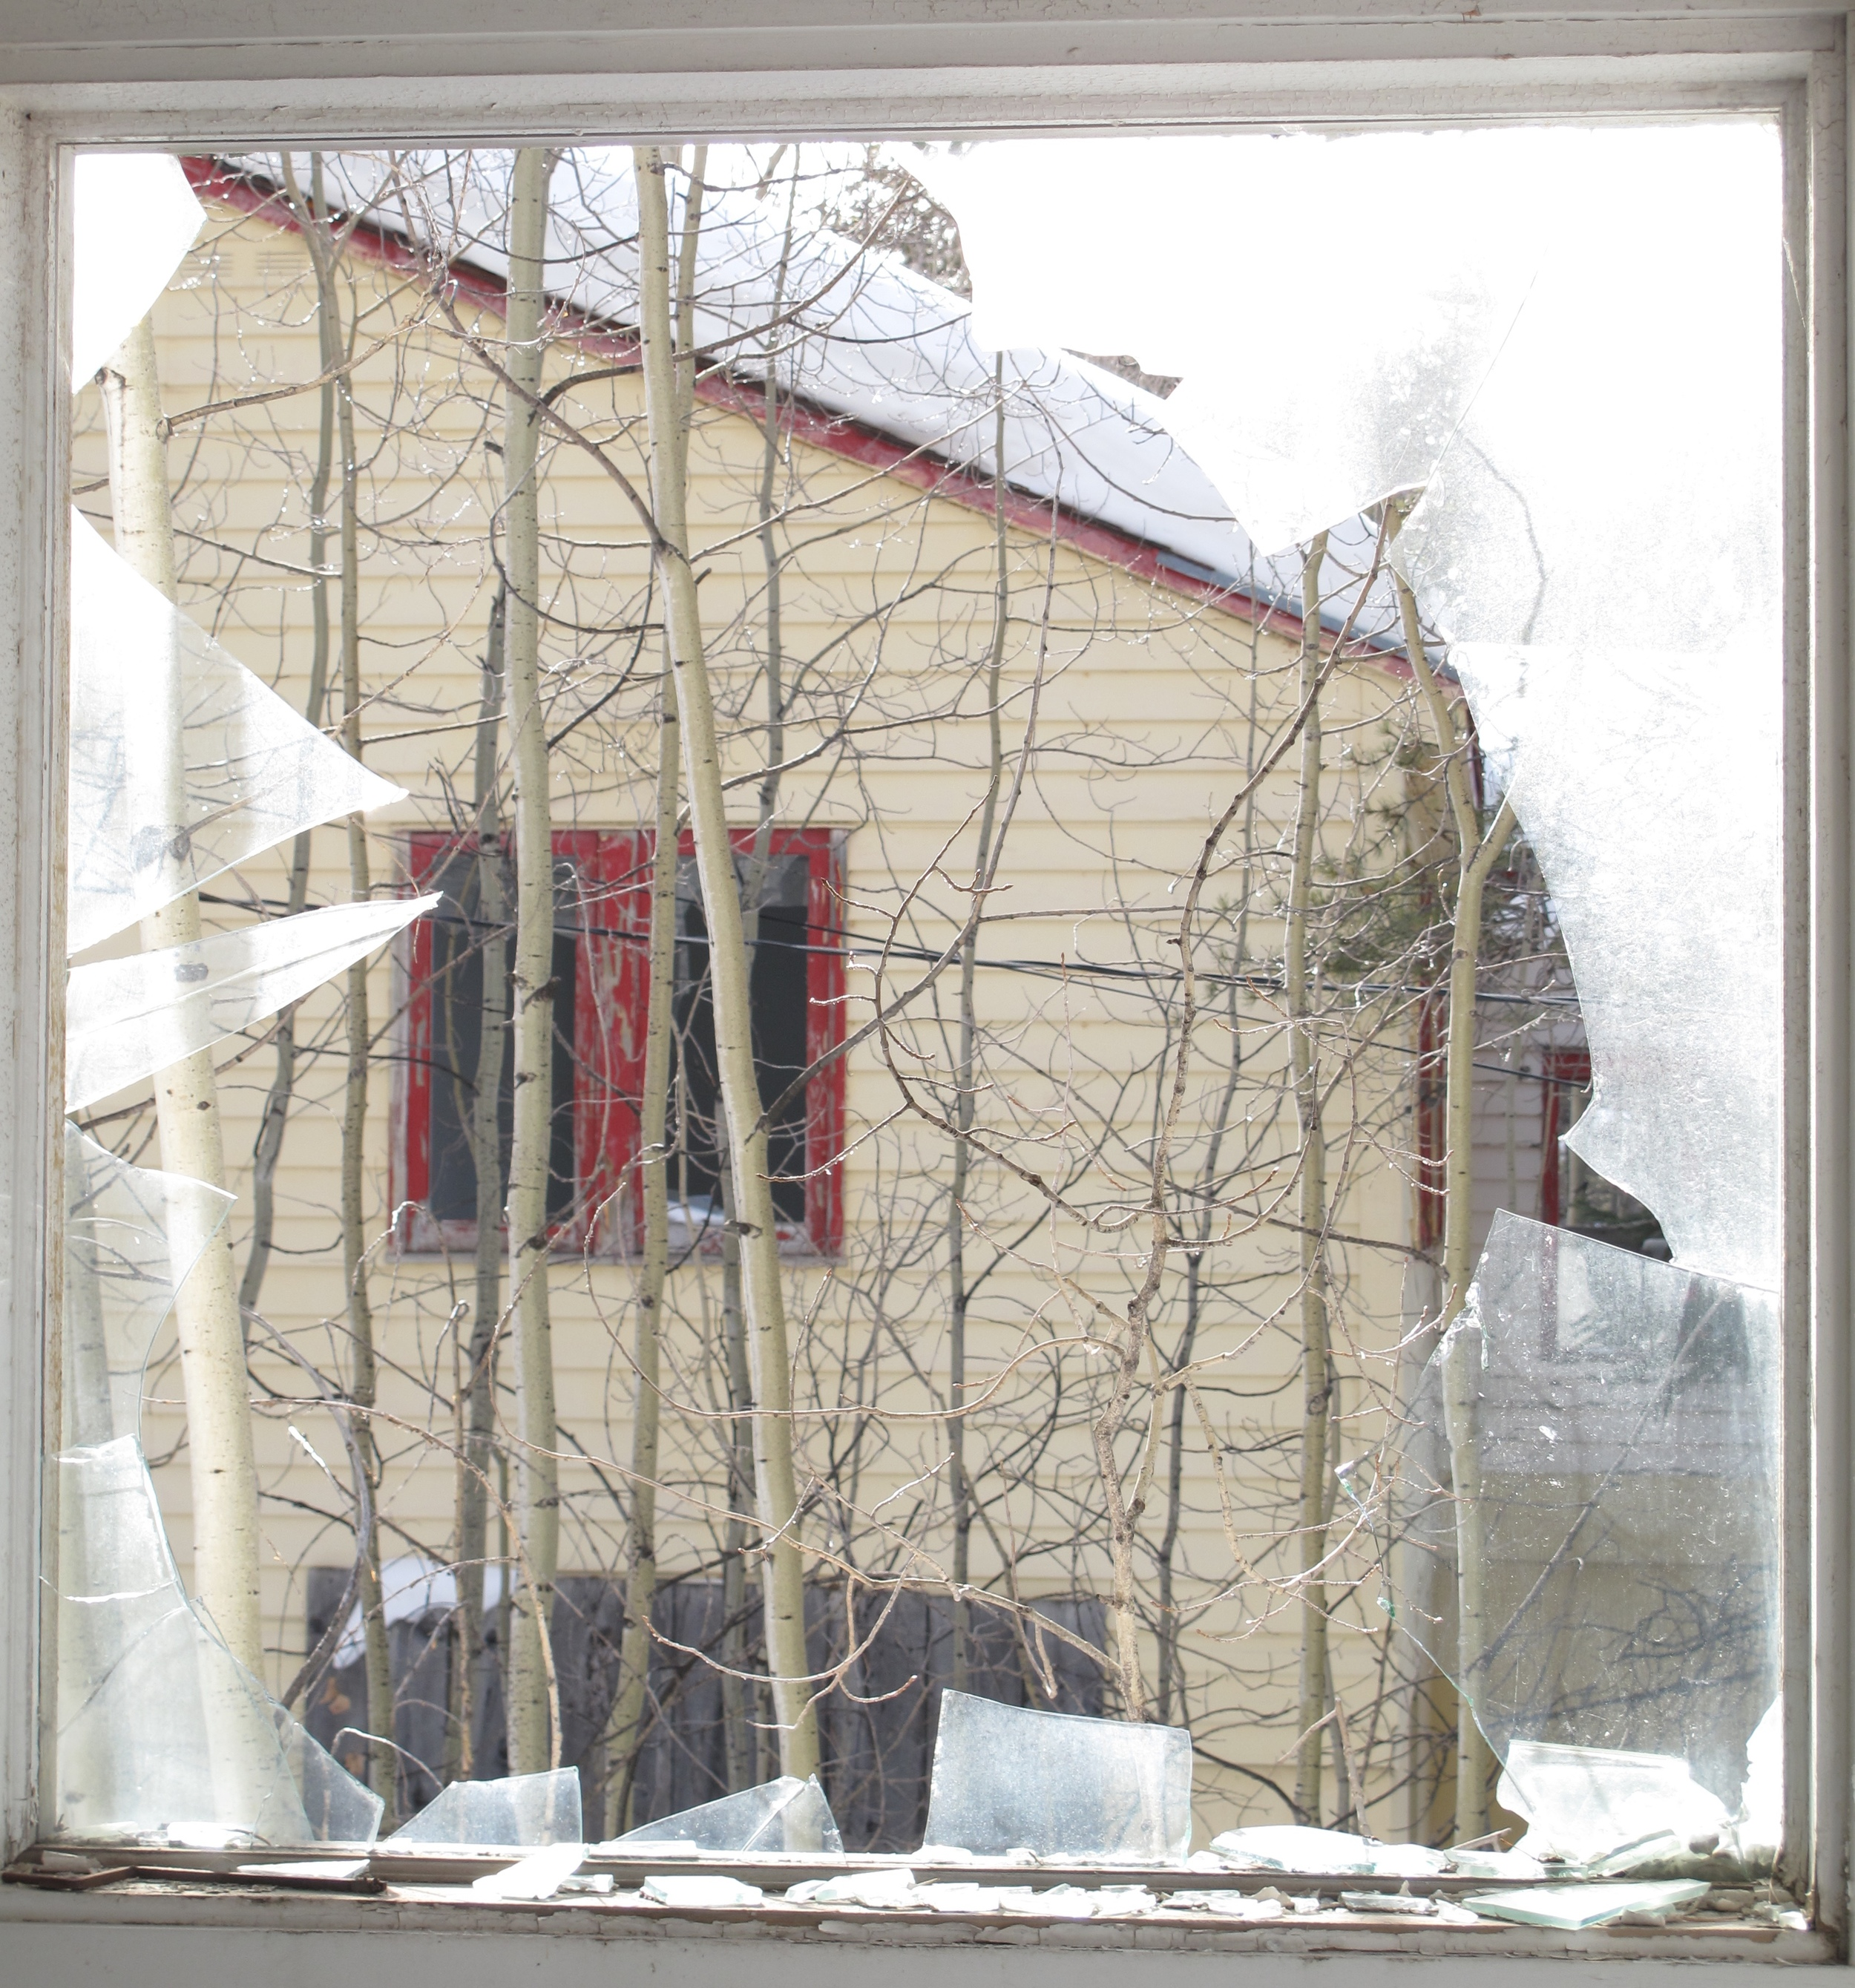 Smashed window, abandoned house in Gilman, CO.